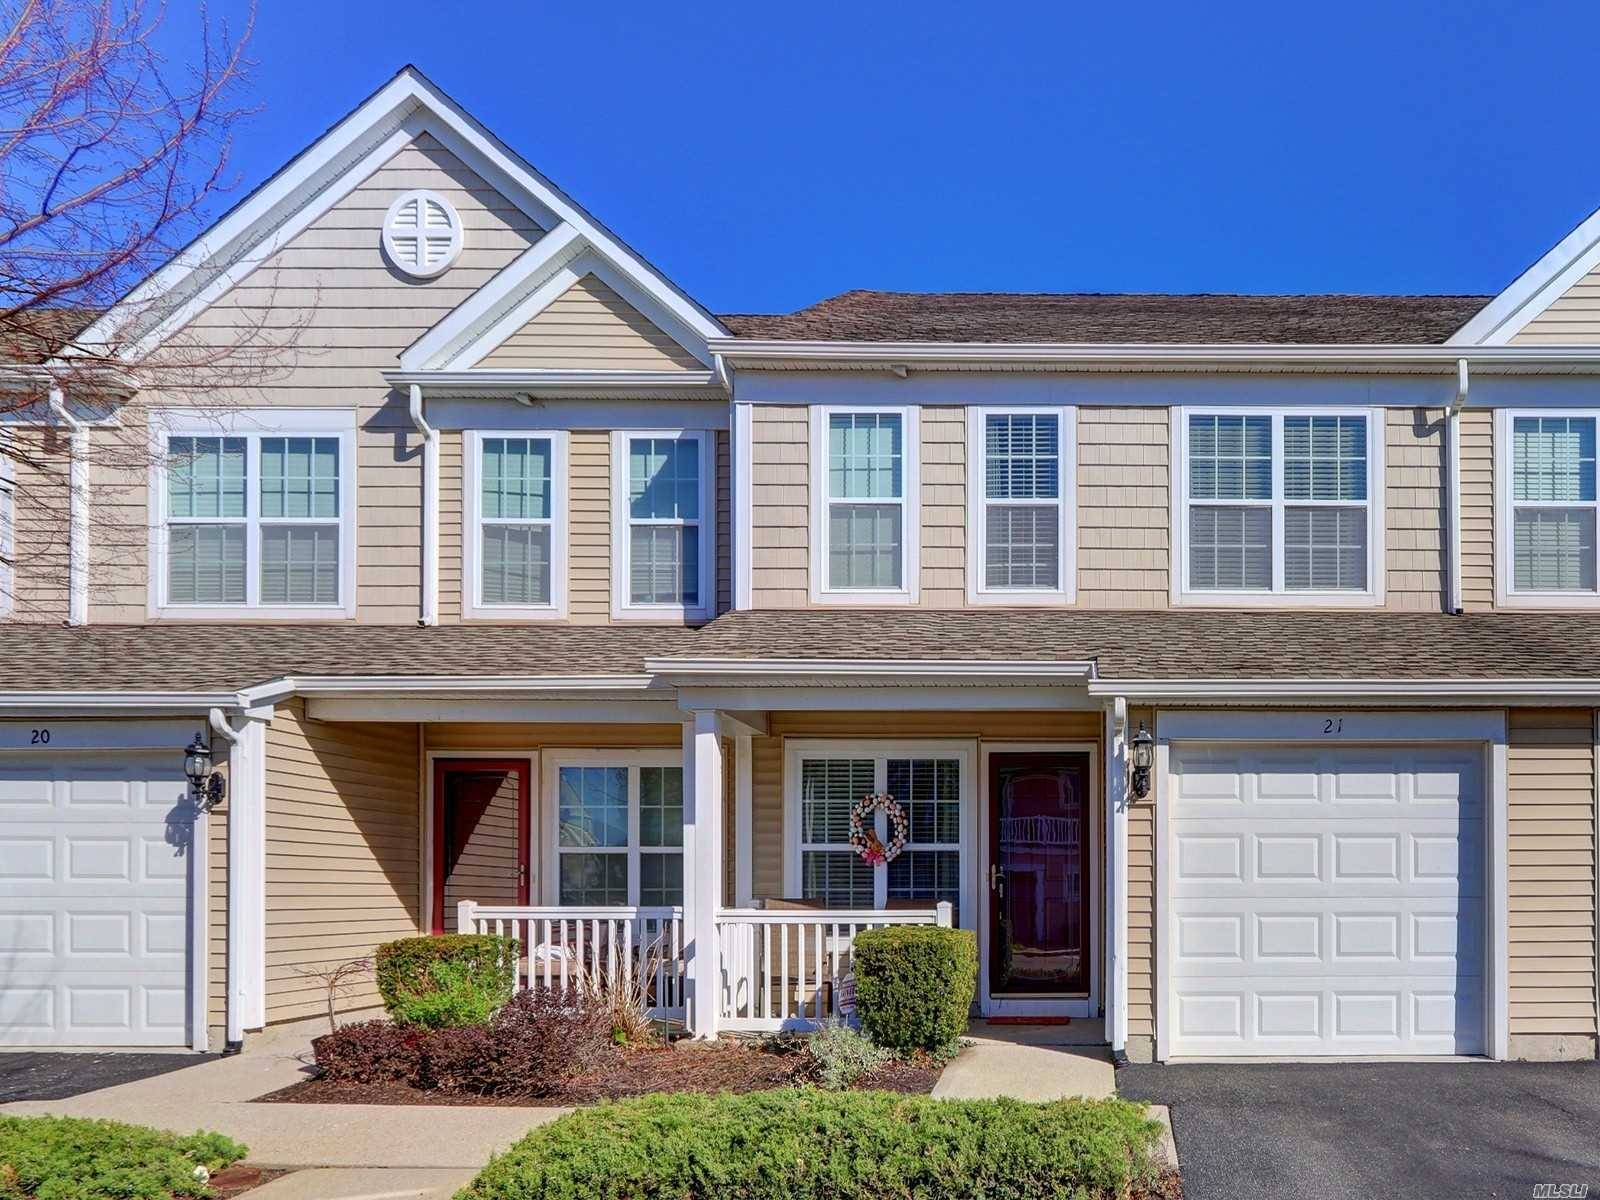 Great opportunity to own a two level Townhouse in a beautiful community.  Must be a first time buyer or not have owned a property in the last 5 years. New flooring on the first level. Unit built in 2008. Both bedrooms have walk-in closets. Full size washer/dryer . One car garage with interior entrance.